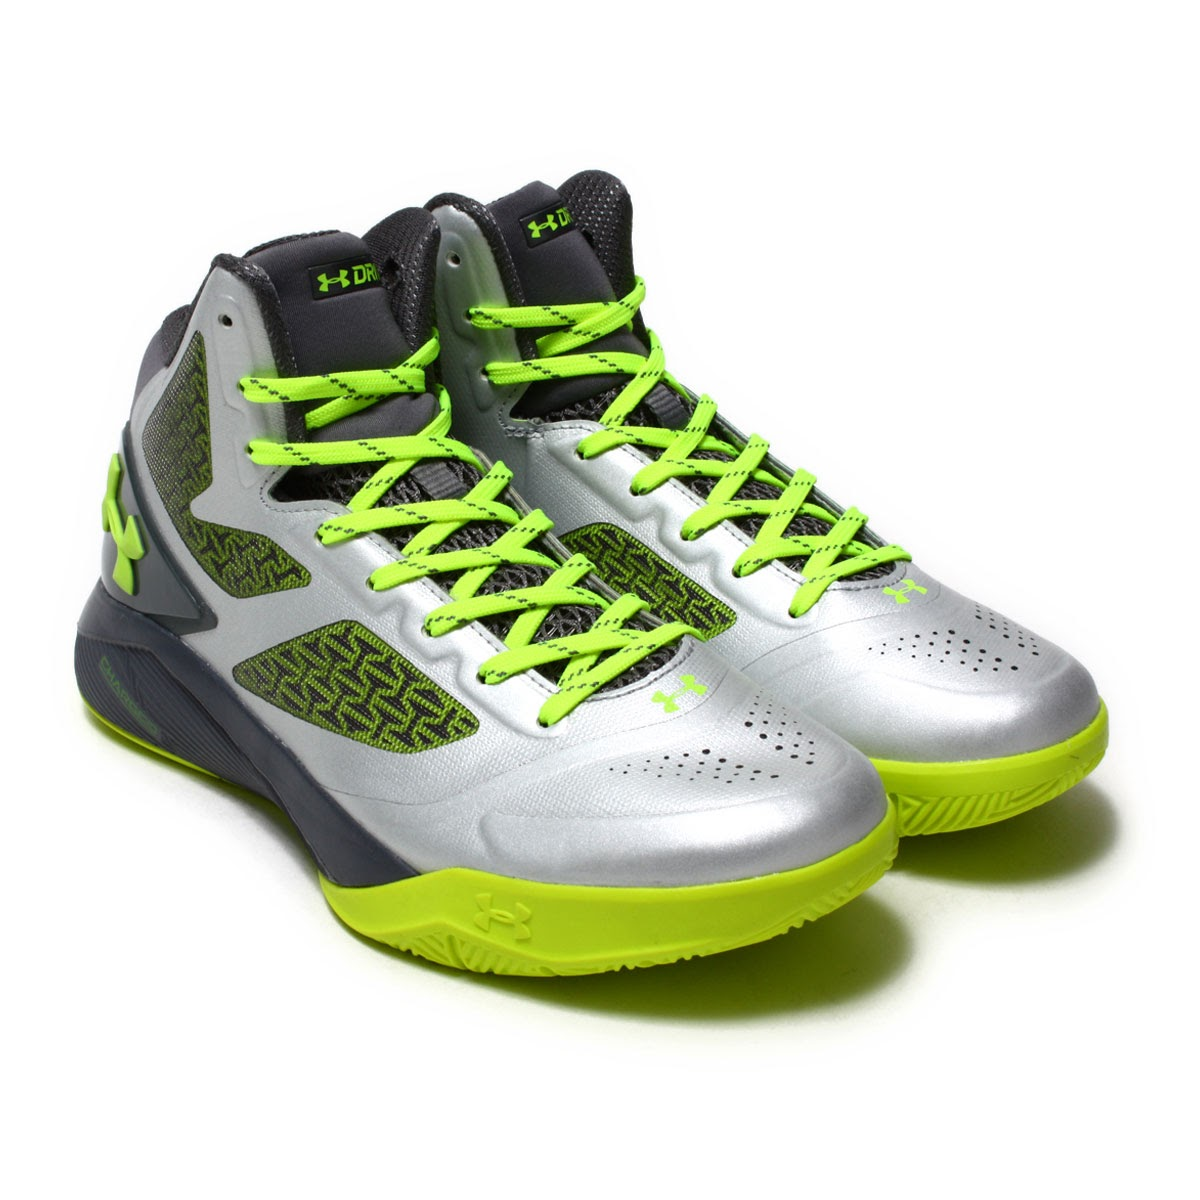 huge discount c07e8 4bbb1 UNDER ARMOUR UA CLUTCHFIT DRIVE 2 (under Armour clutch fitting drive 2)  Metallic Silver 17FA-I